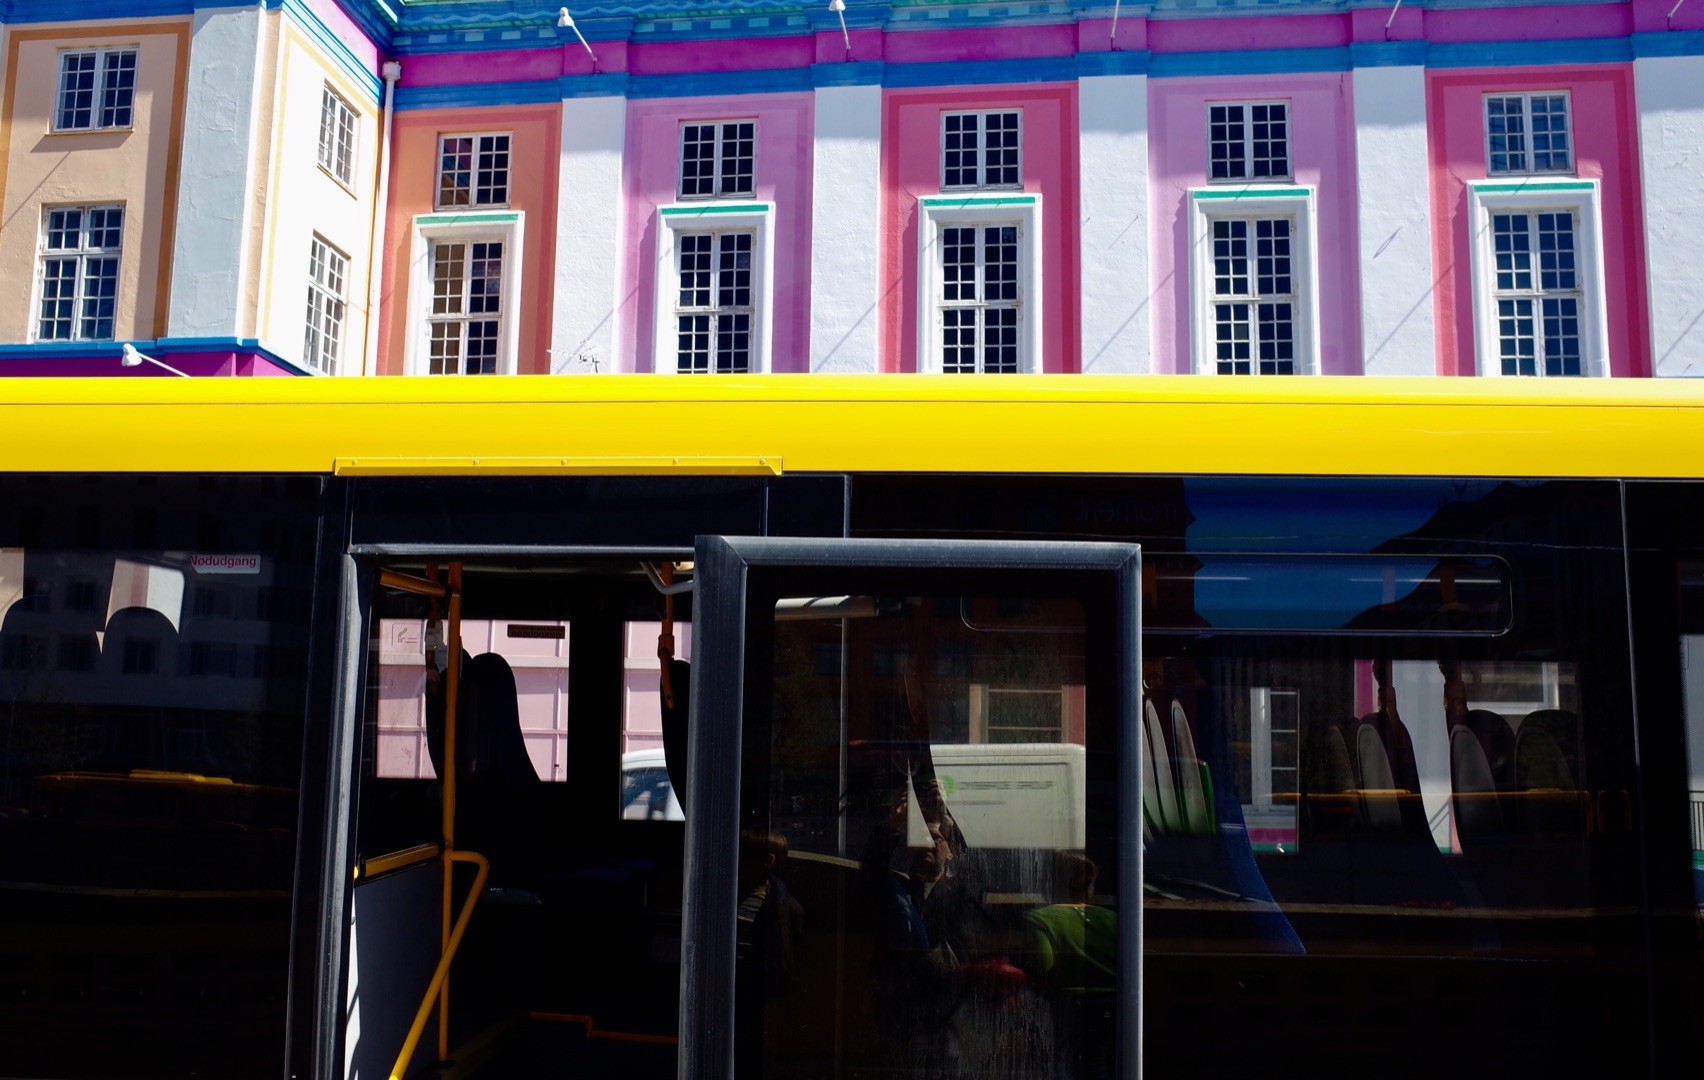 A yellow bus and brightly decorated architecture